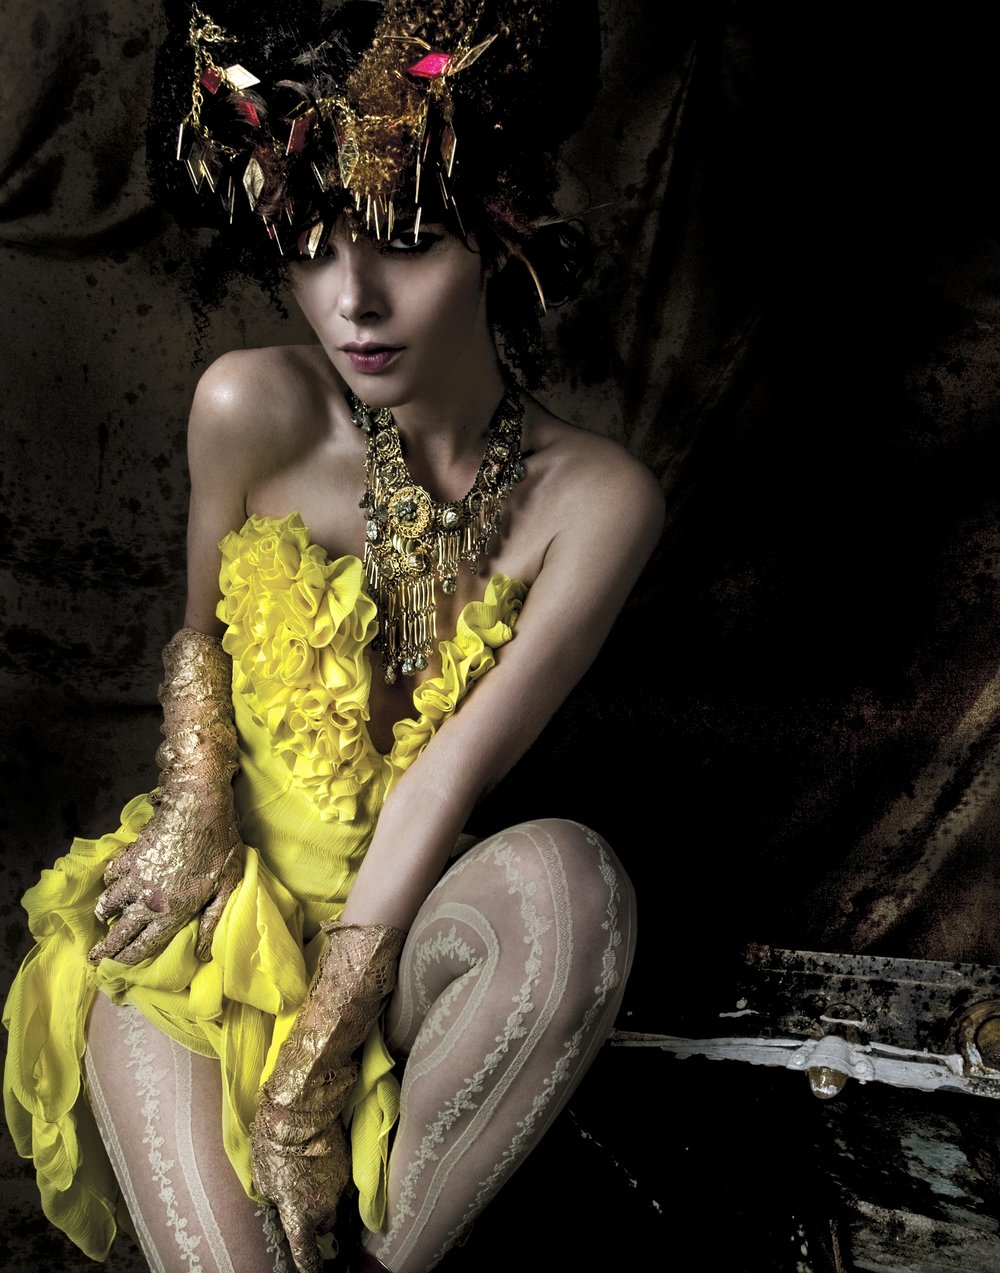 045_portfolio_yellowdress.jpg